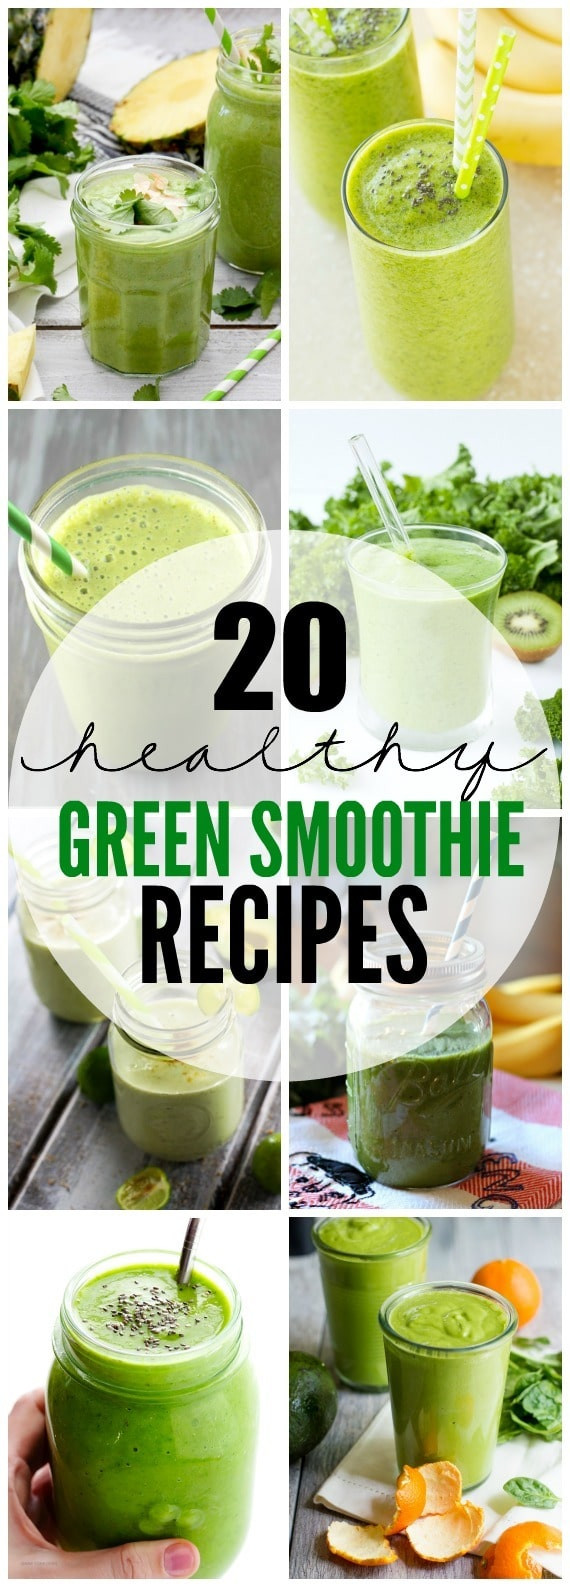 Healthy Green Smoothie Recipes top 20 20 Healthy Green Smoothie Recipes Yummy Healthy Easy